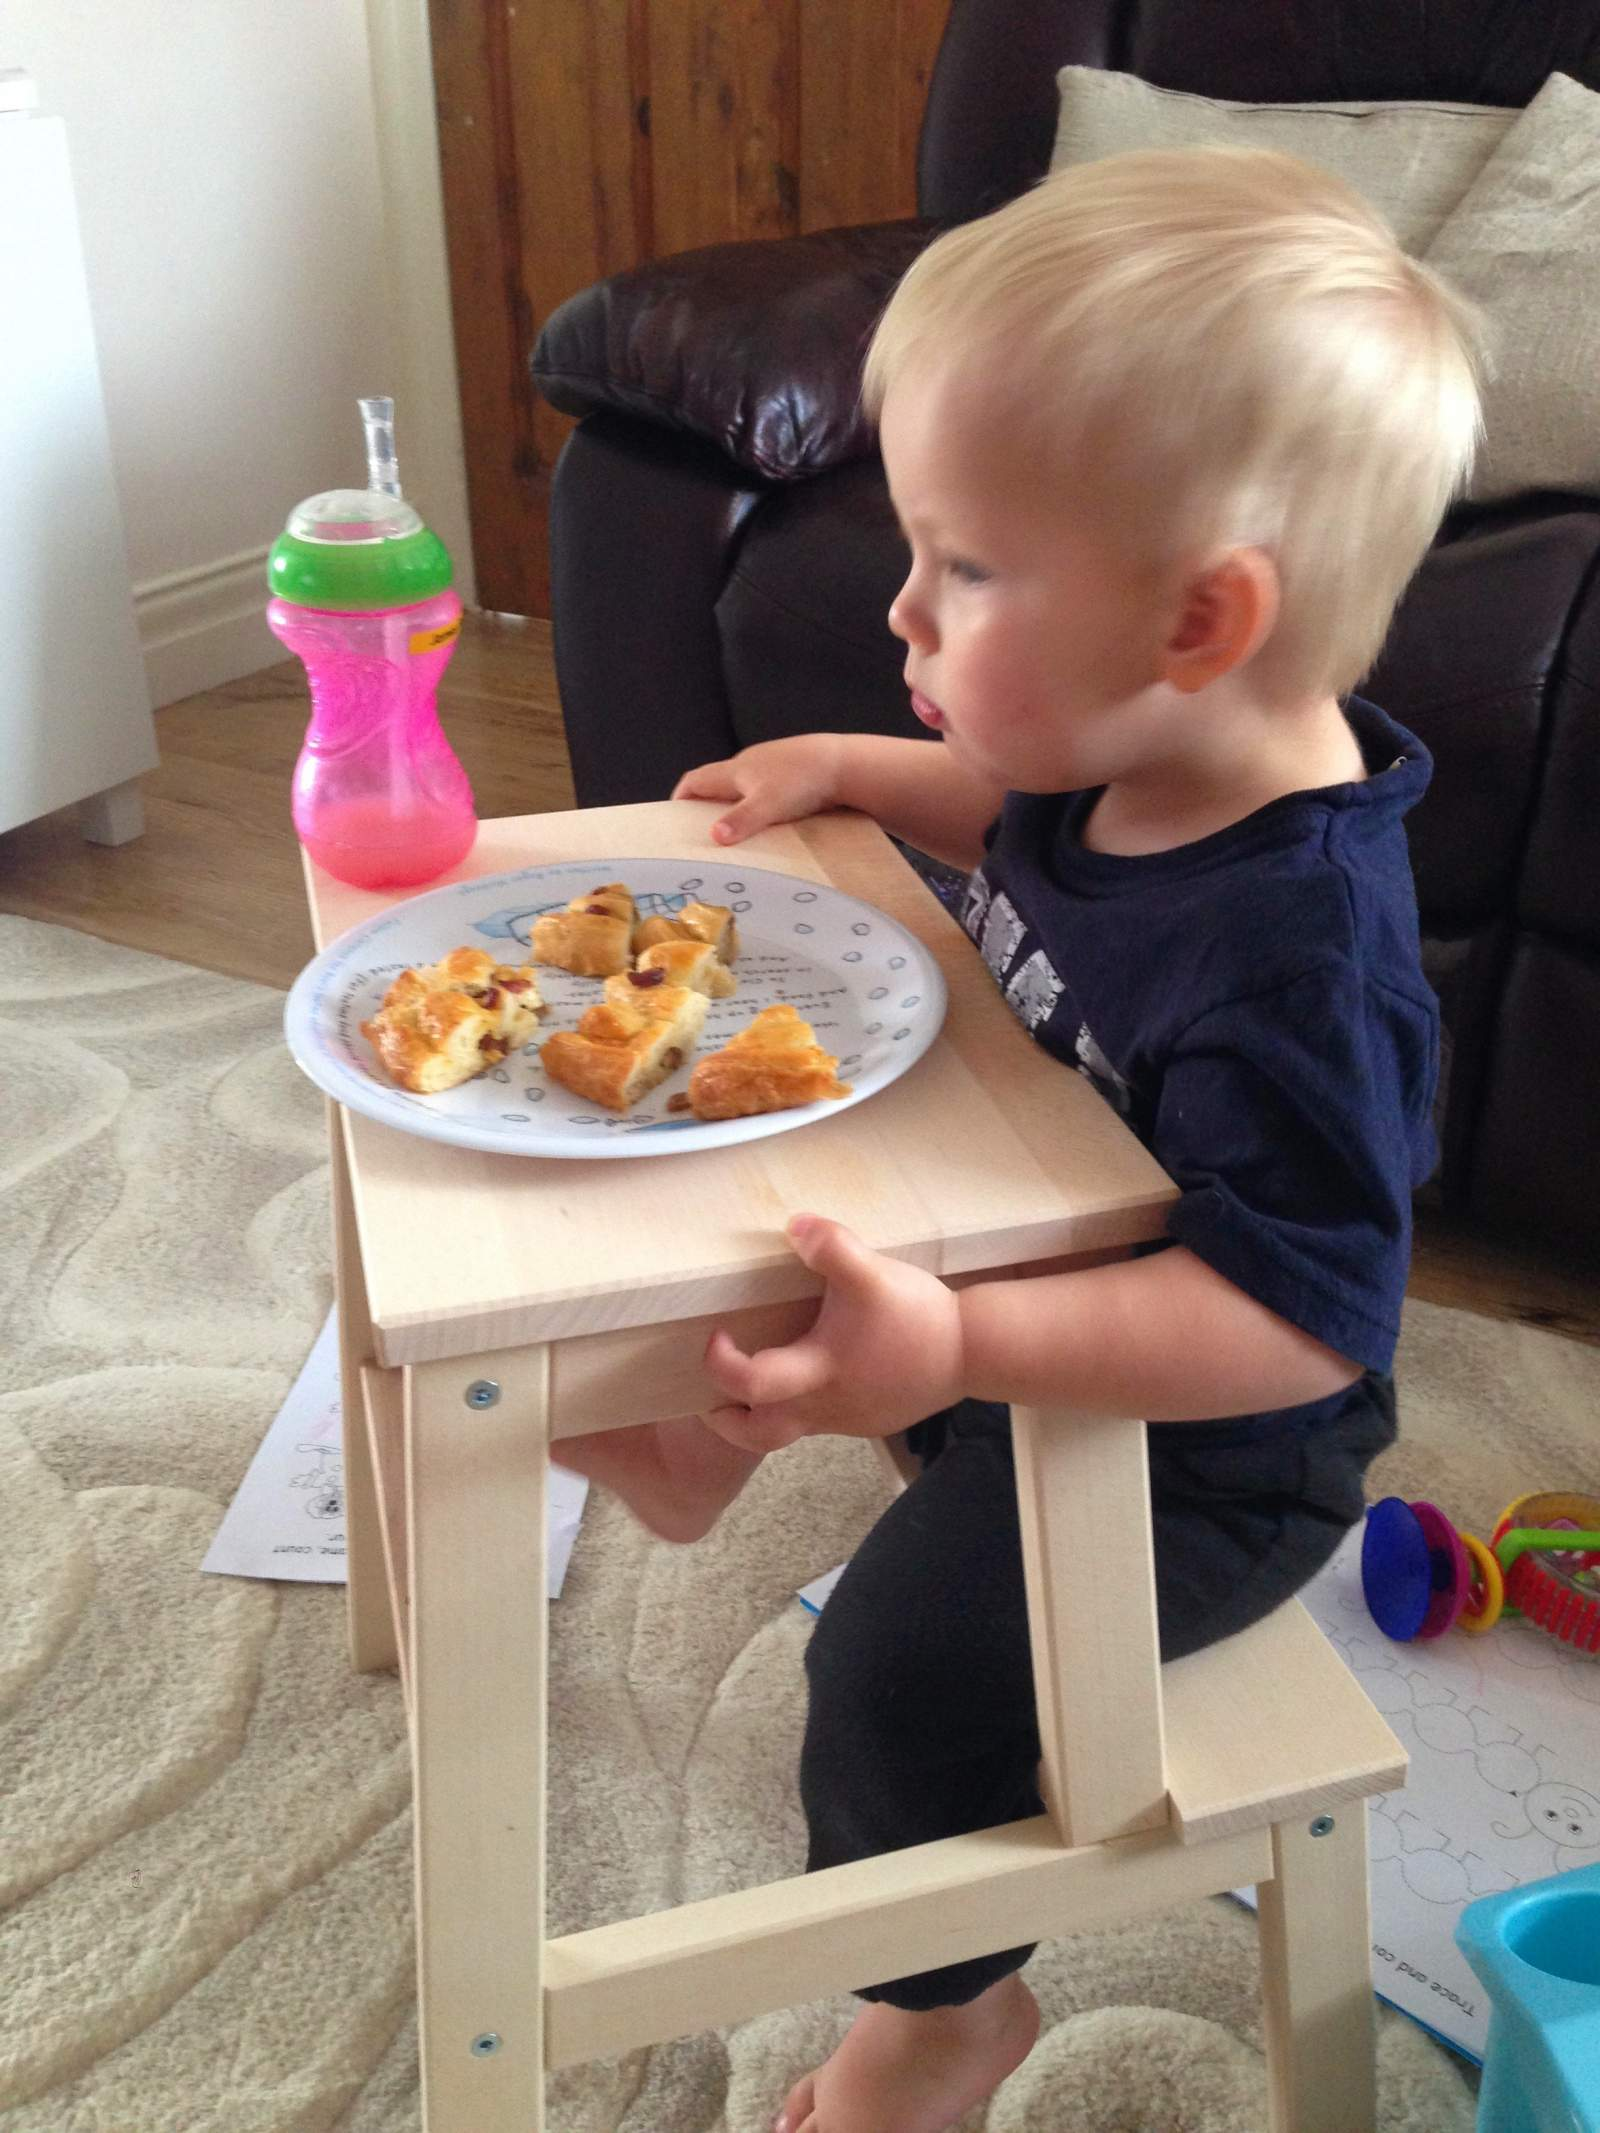 ikea step stool as table for toddler